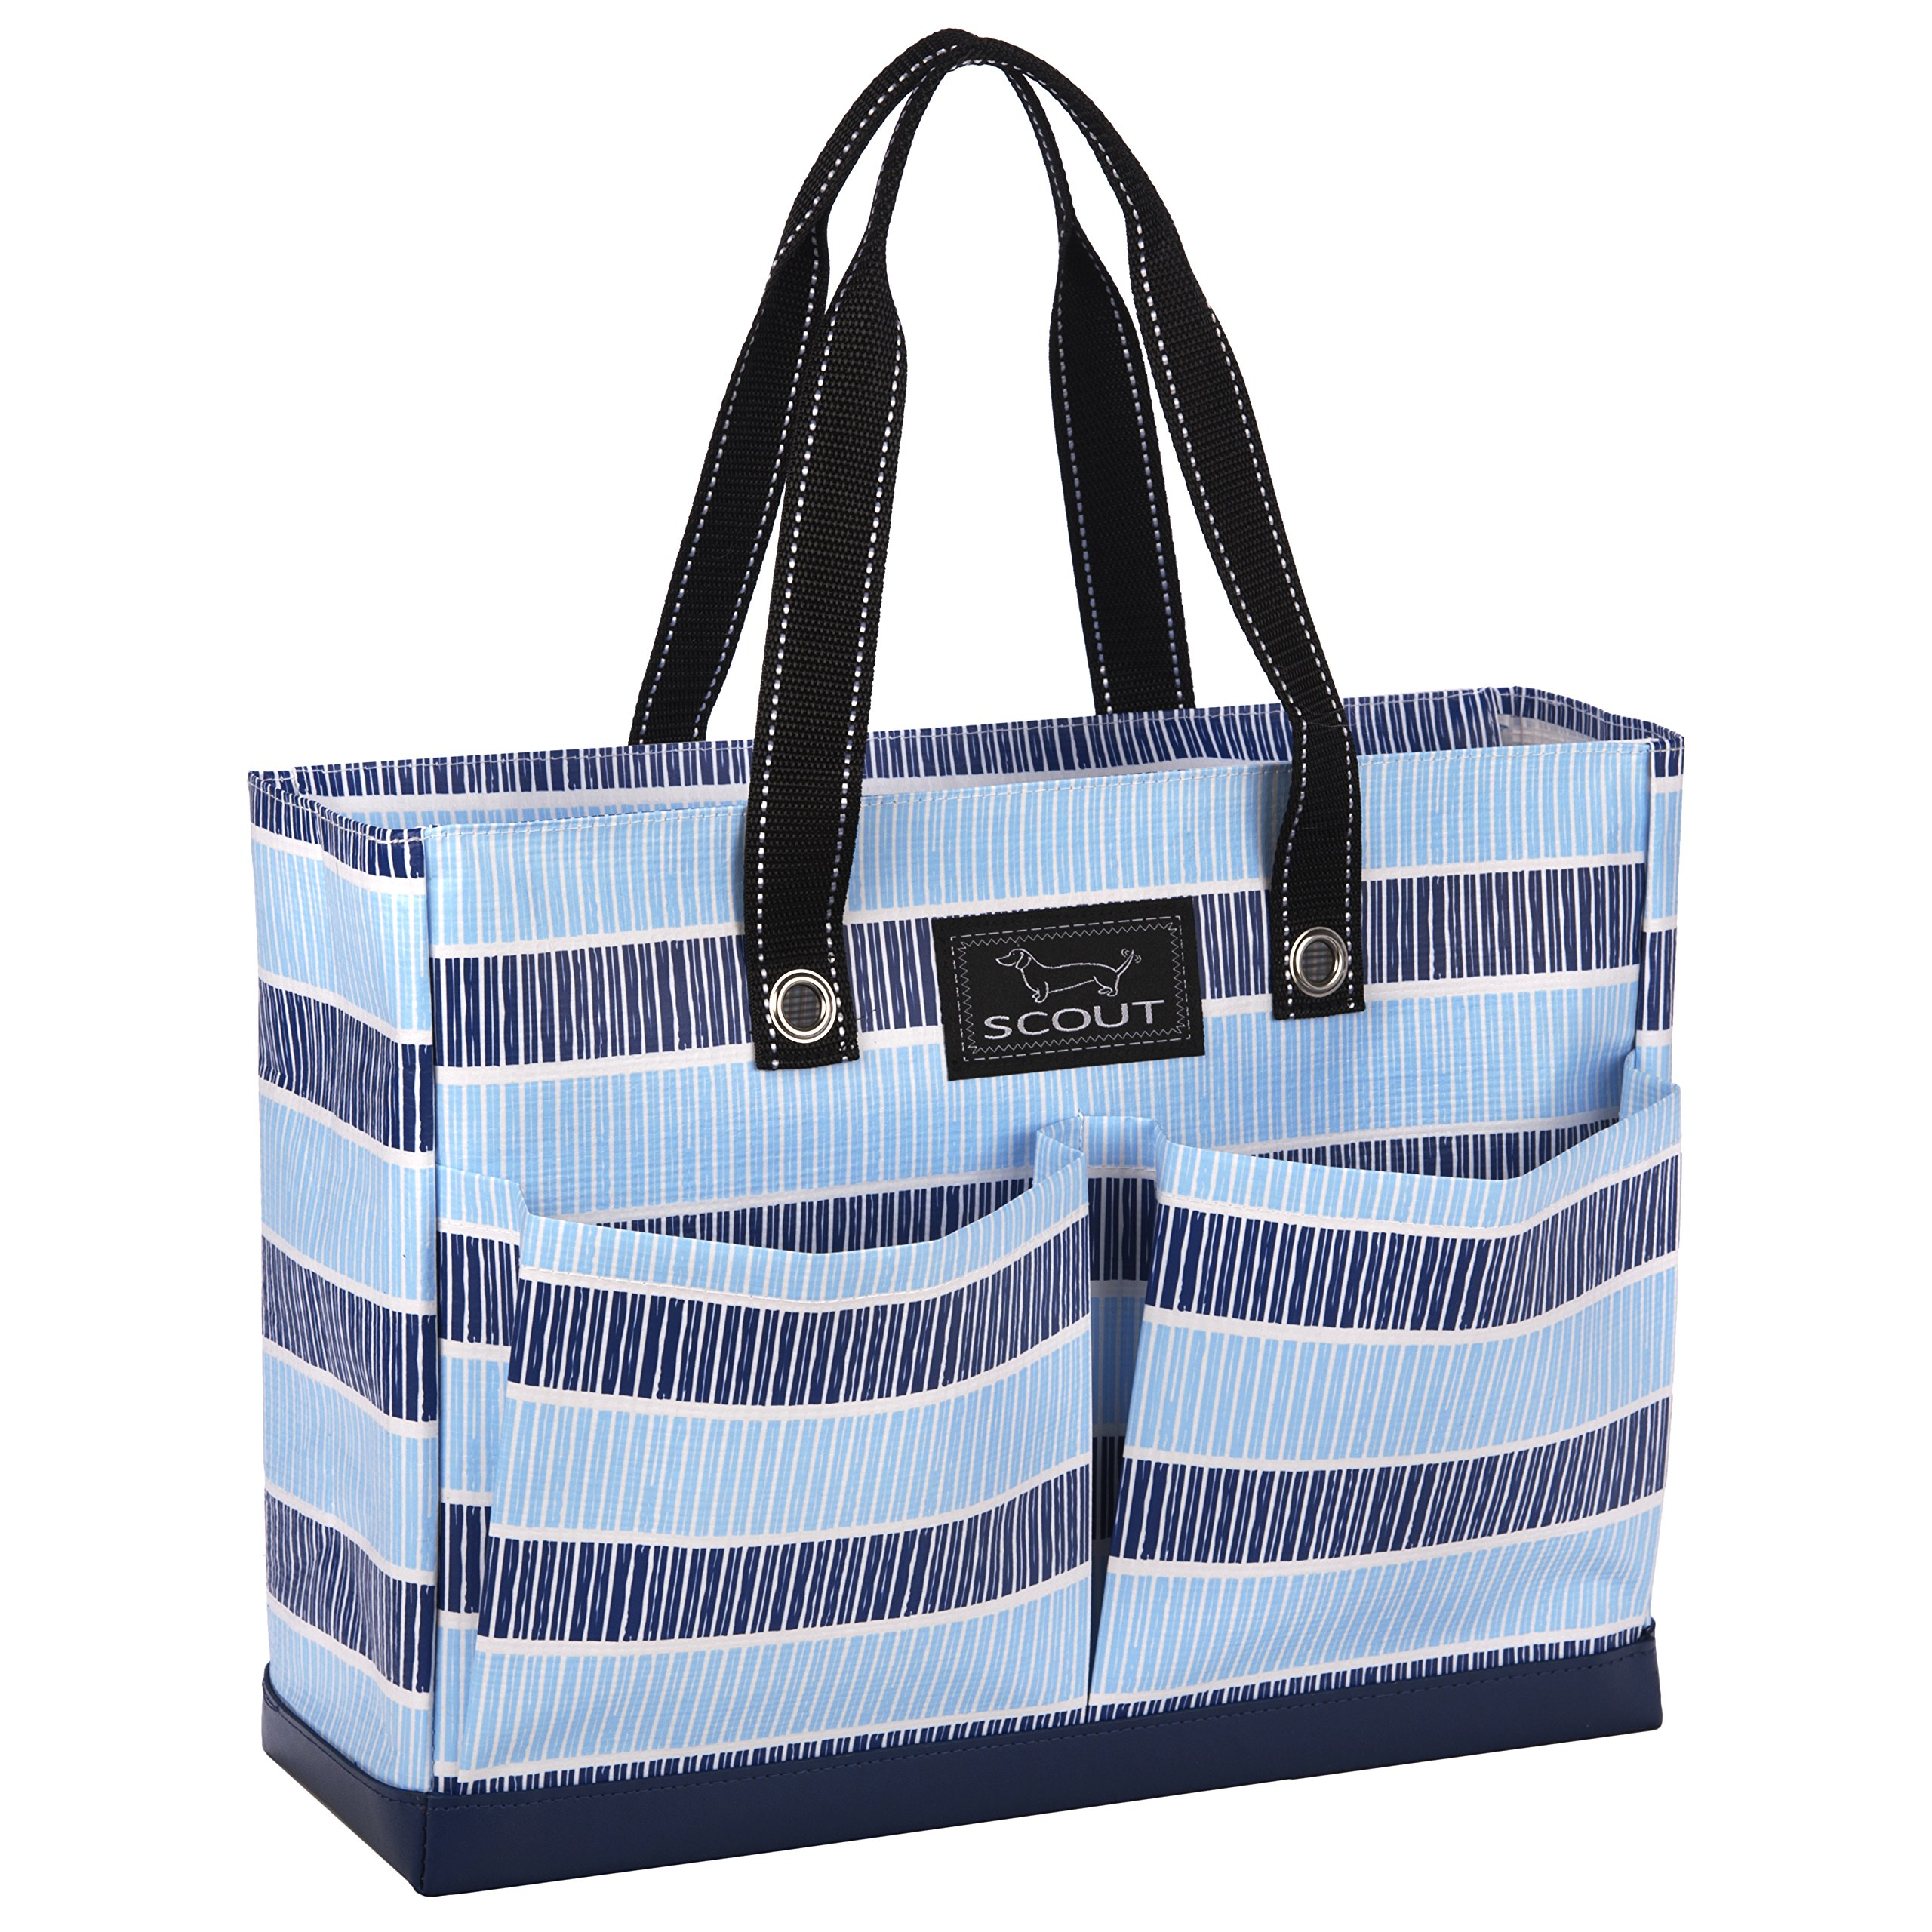 SCOUT Uptown Girl Medium Multi-Pocket Tote Bag, Water Resistant, Zips Closed, Deep End